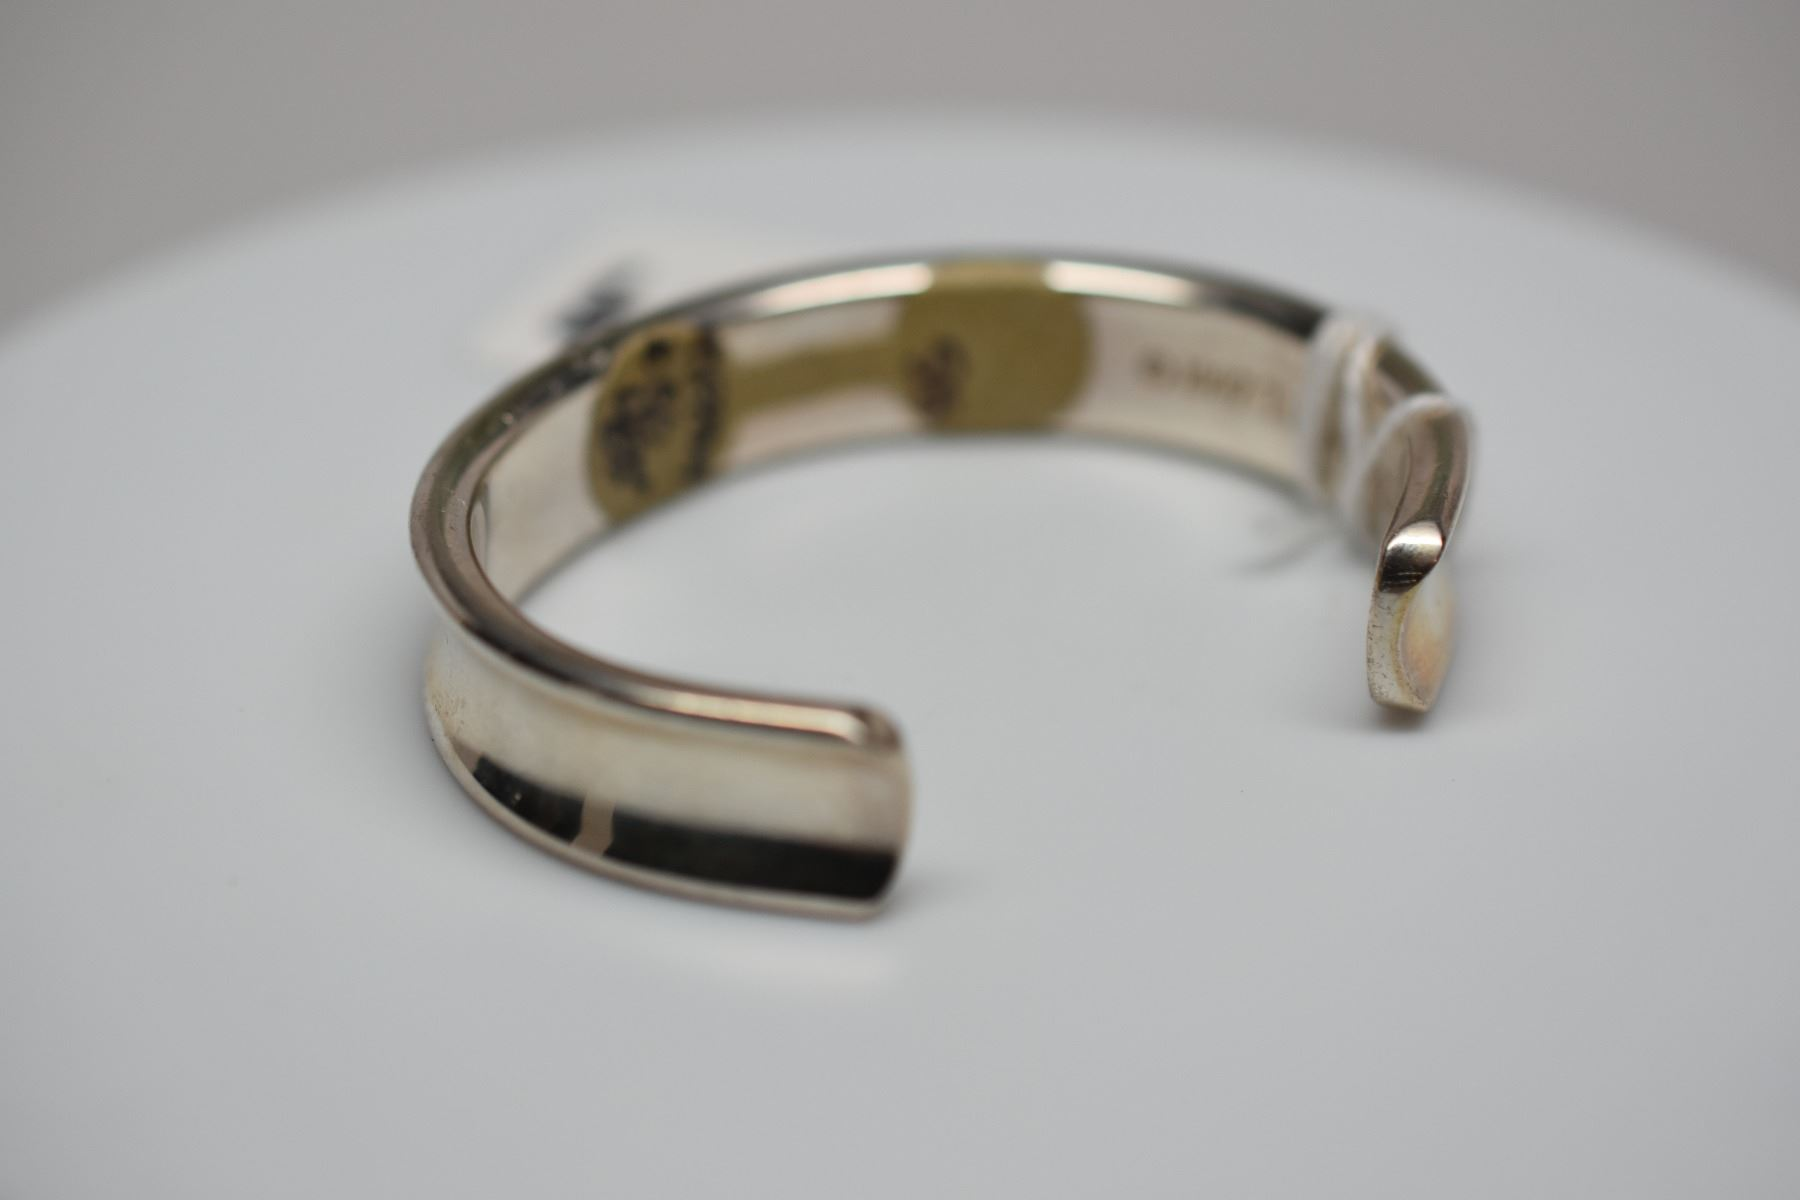 ladies bangles jewellery sterling handmade hallmarked wide solid bangle statement open hammered silver